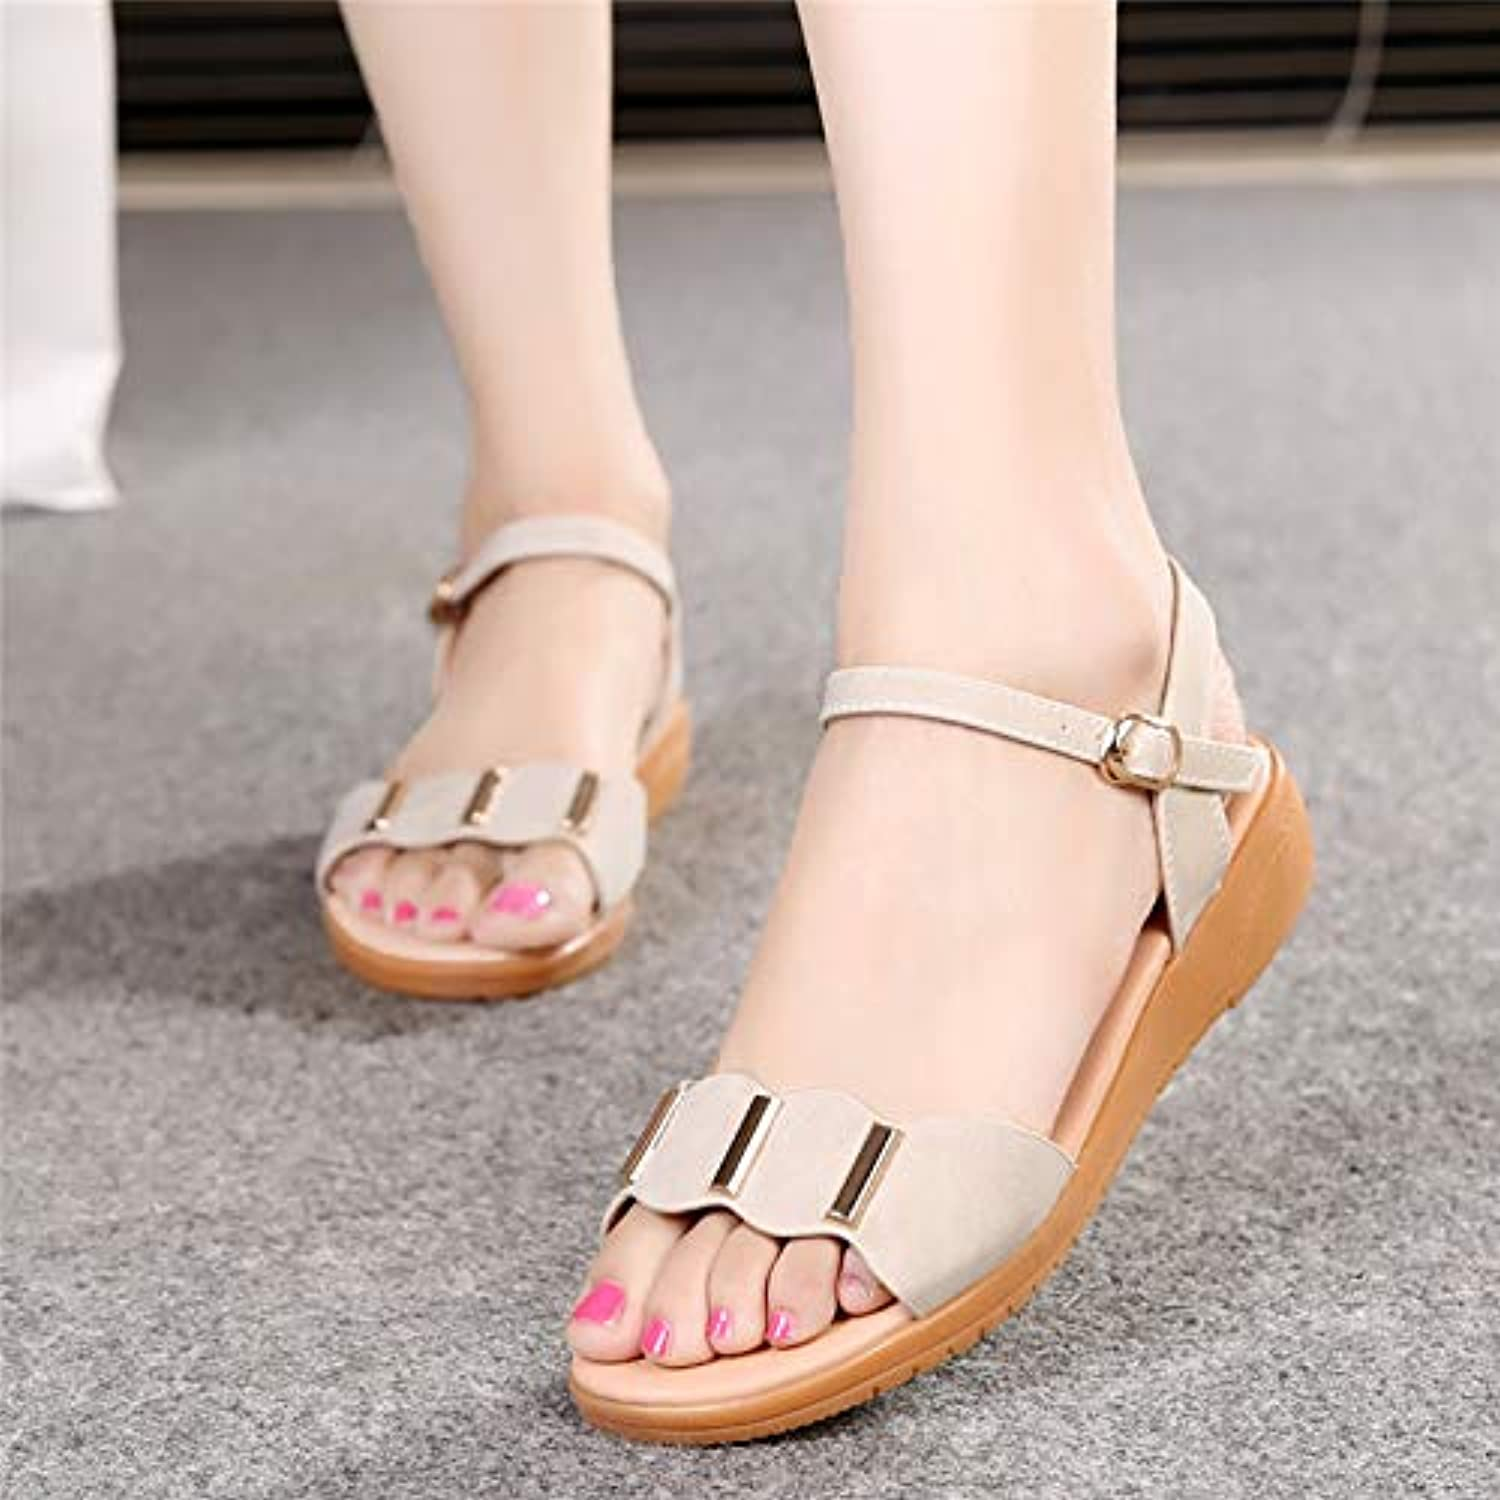 LGK&FA Sandals Summer Slopes Middle Age and Middle-Aged Women's Shoes. Thirty-Eight Beige